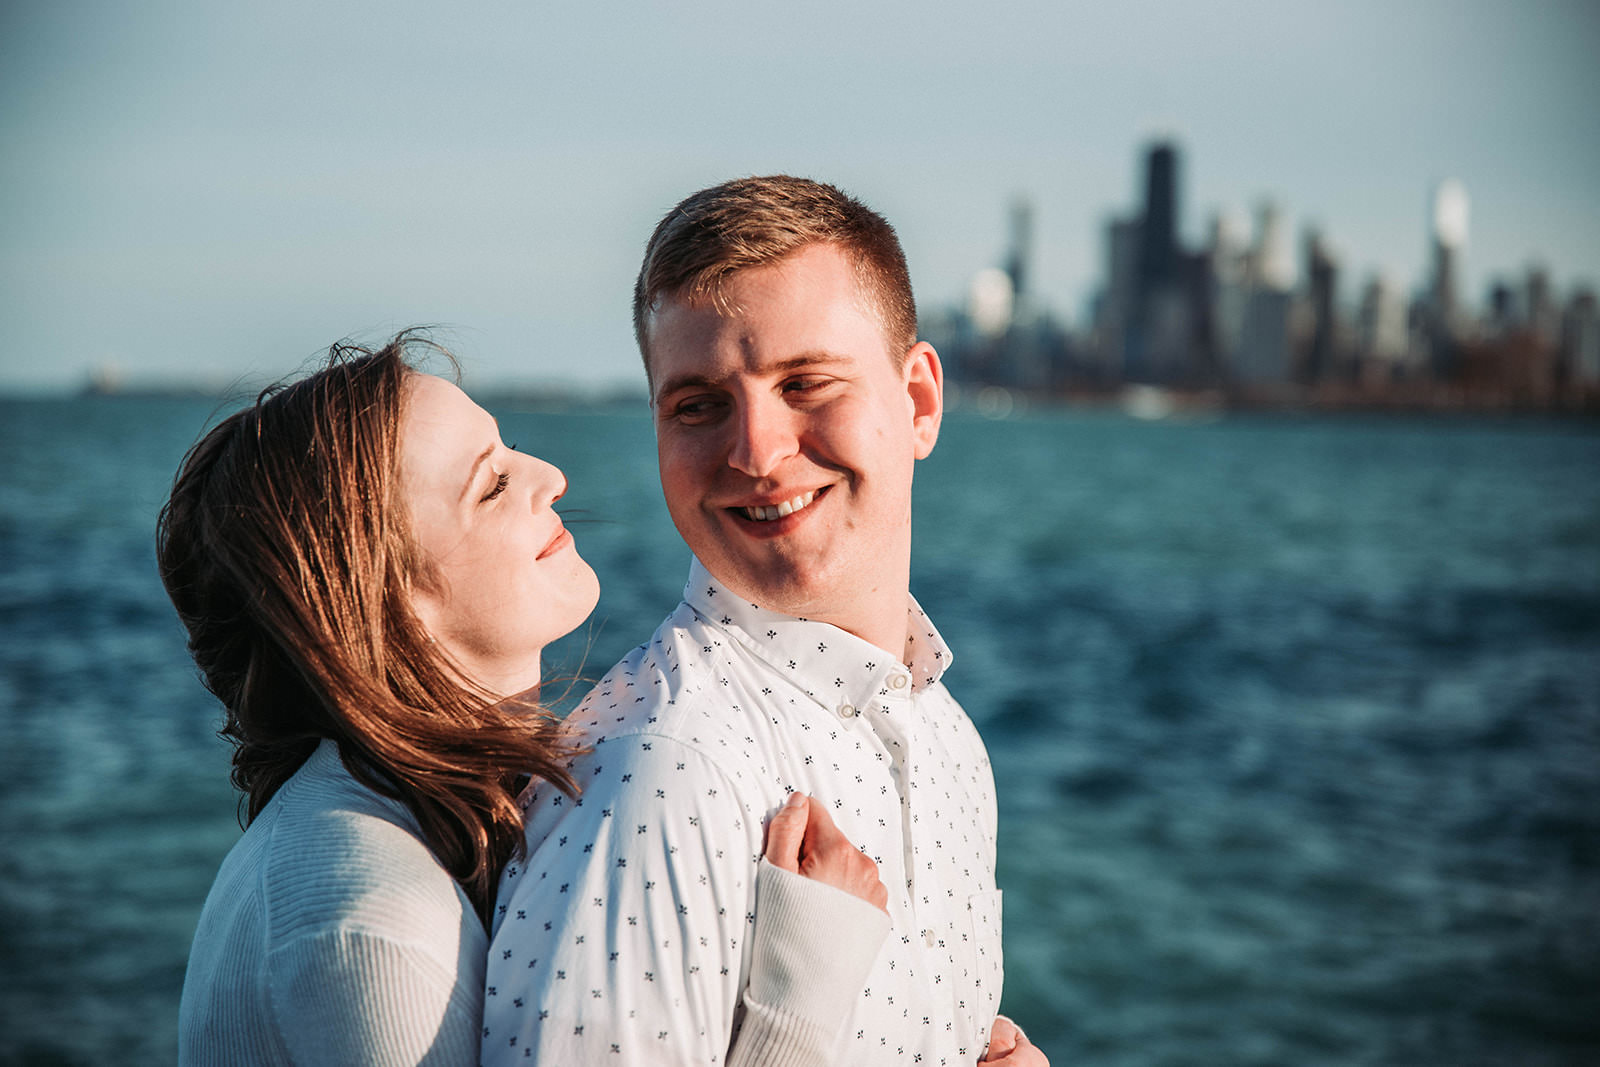 Downtown_chicago_spring_engagement_session-24.jpg